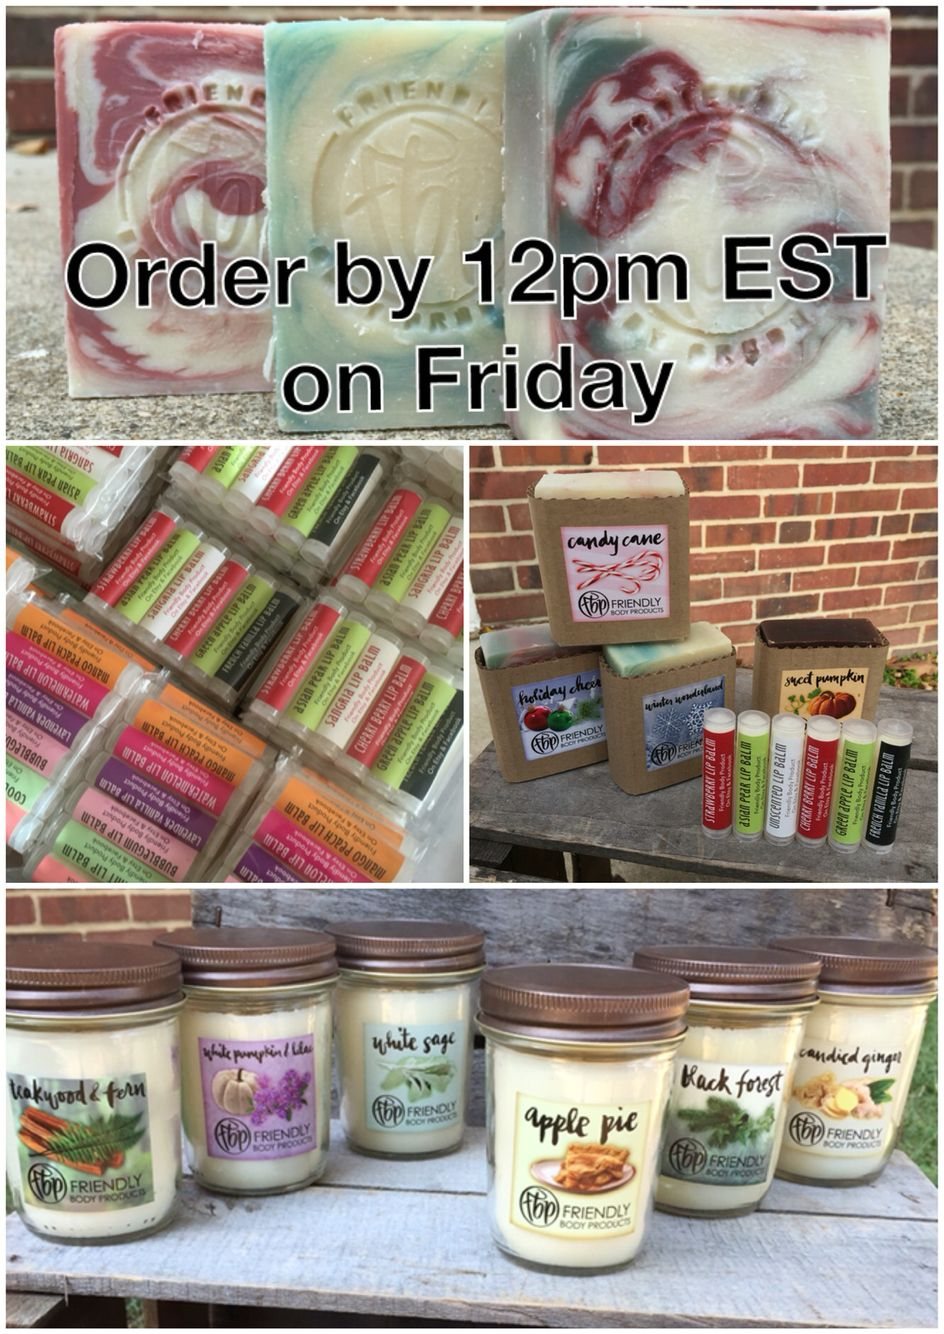 5 for 20 handmade soaps 6 for 10 beeswax lip balms 10